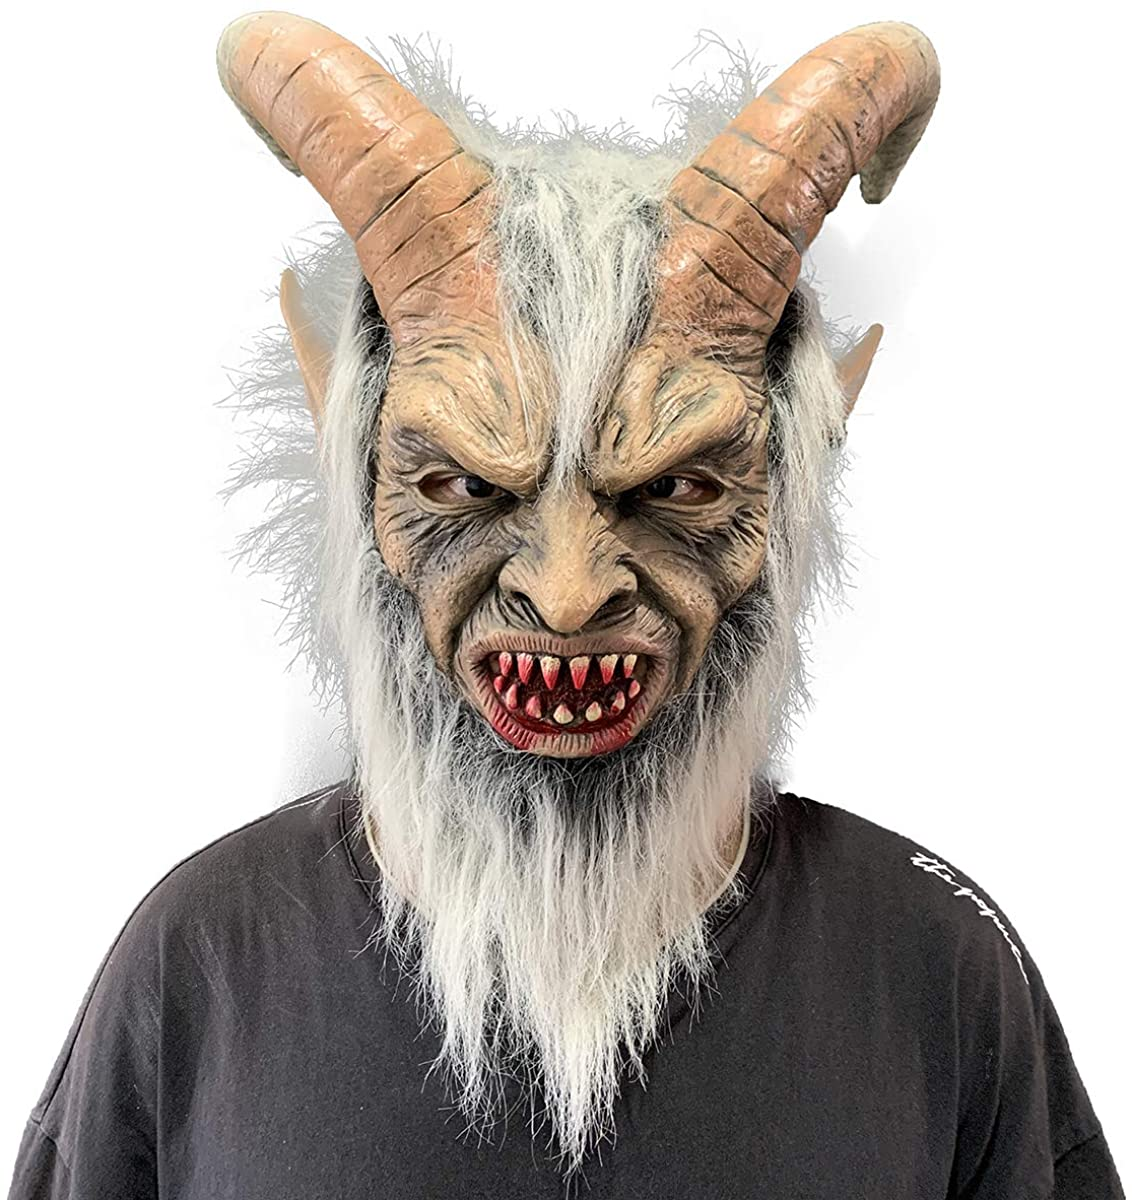 Lucifer Mask Scary Devil Krampus Adults Halloween Cosplay Costume Props Yellow